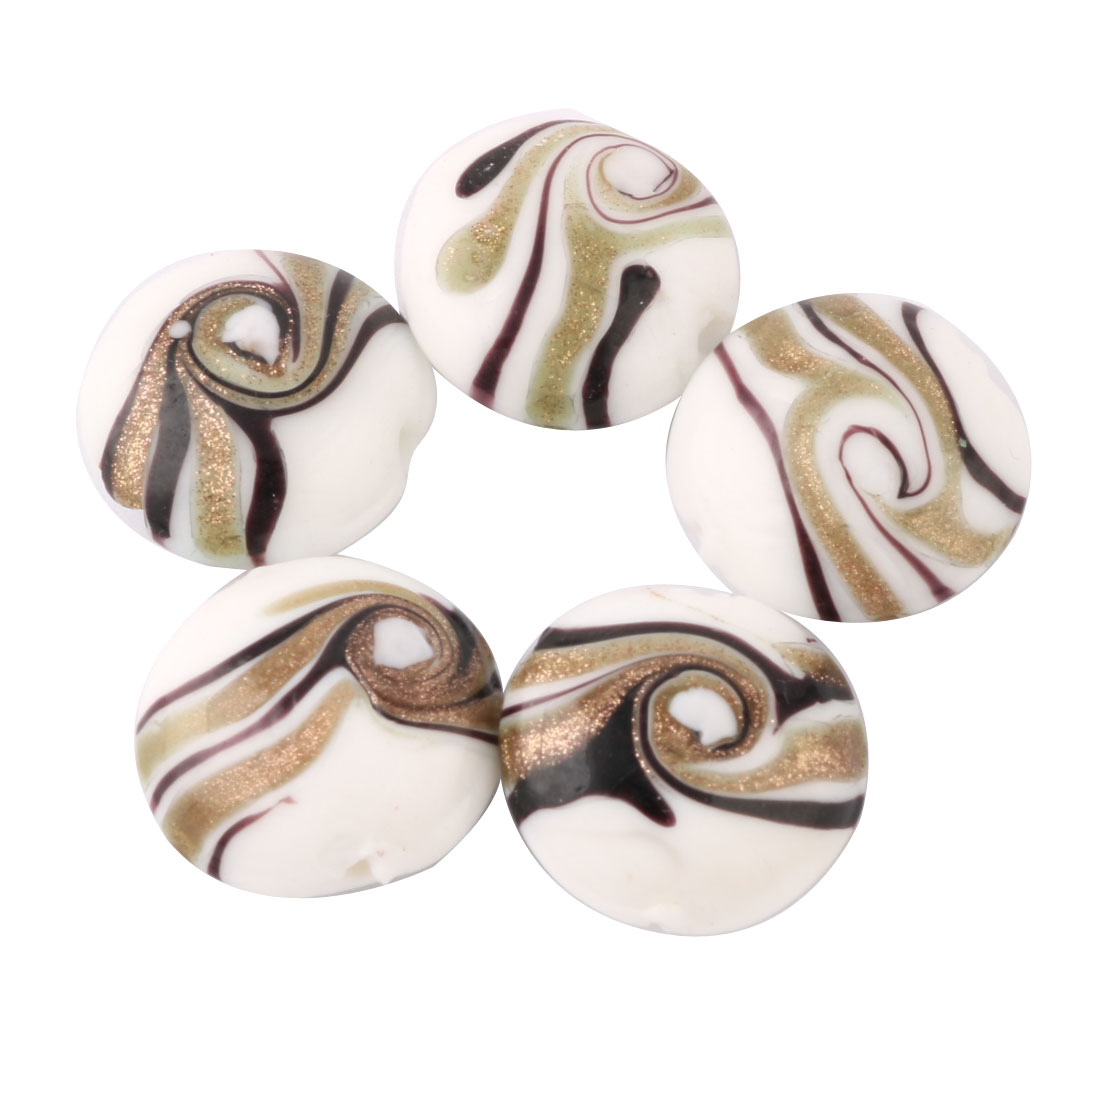 Jewelry Making Craft Flowering Prints Loose Bead DIY Bracelet 20mm Dia 5pcs